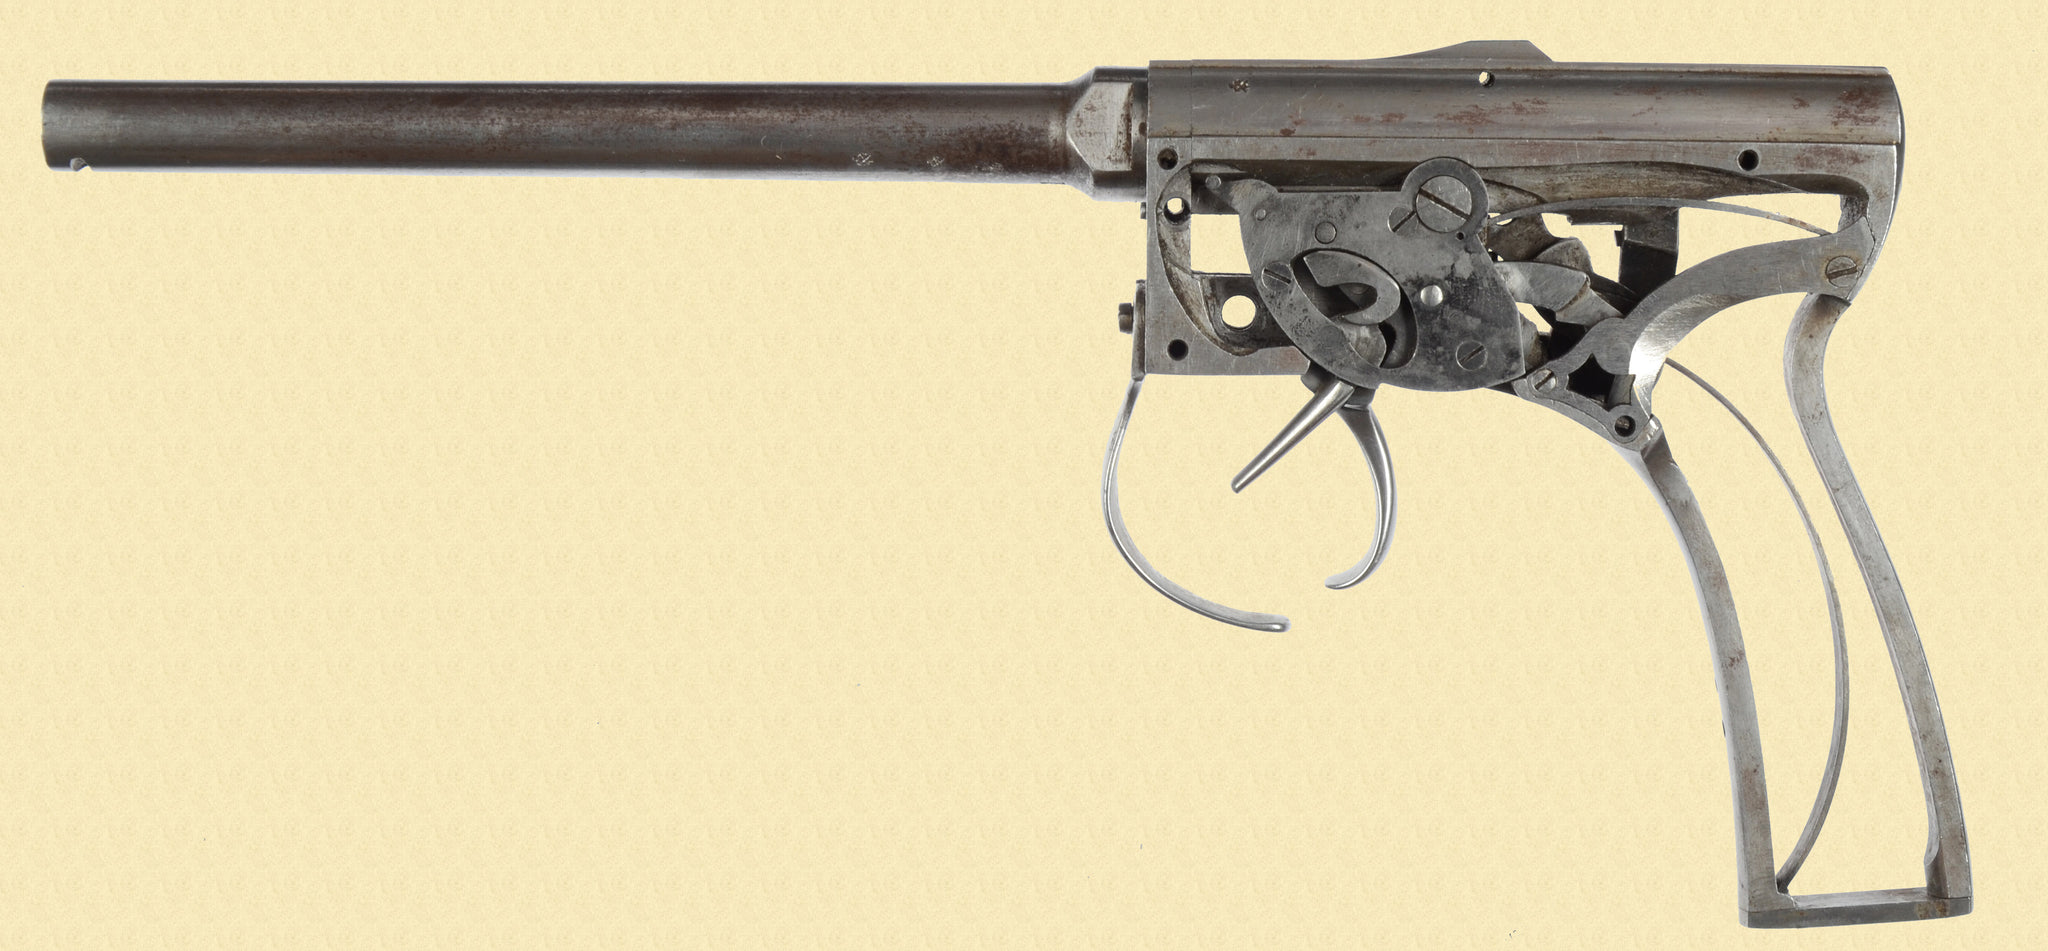 MACNAUGHTON REPEATING PISTOL